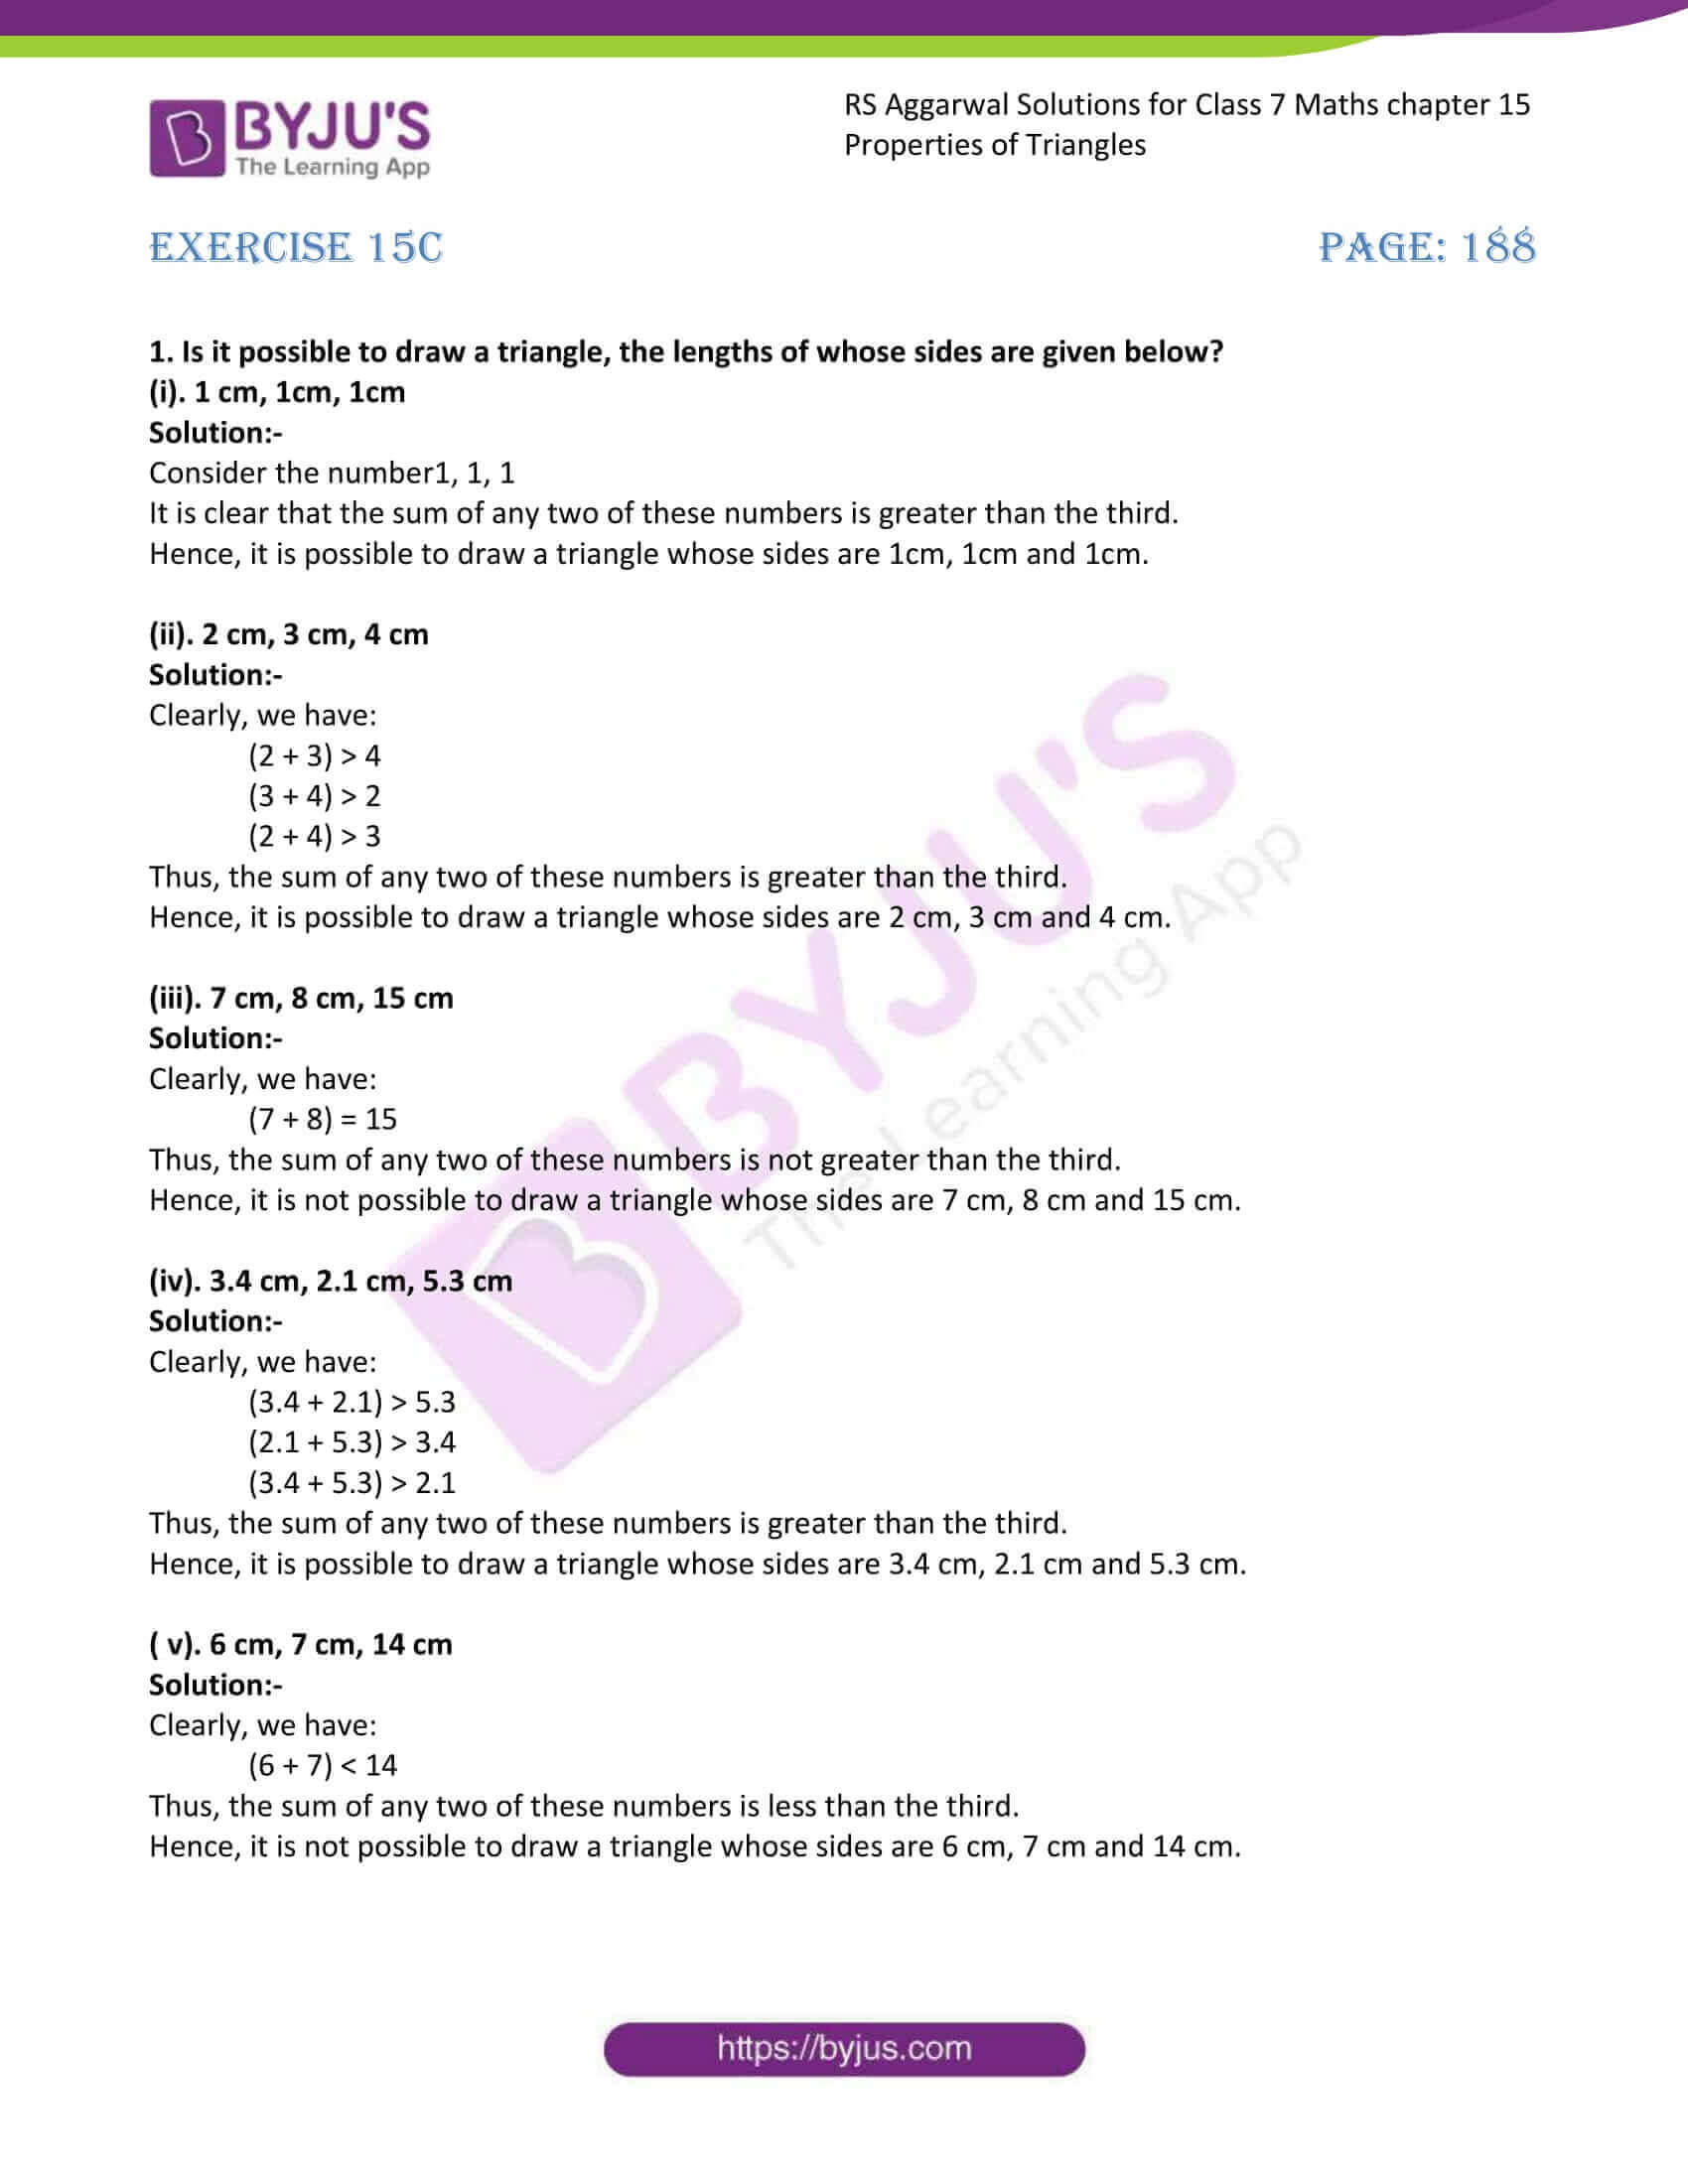 RS Aggarwal Solutions Class 7 Maths Chapter 15 Free Solutions 07